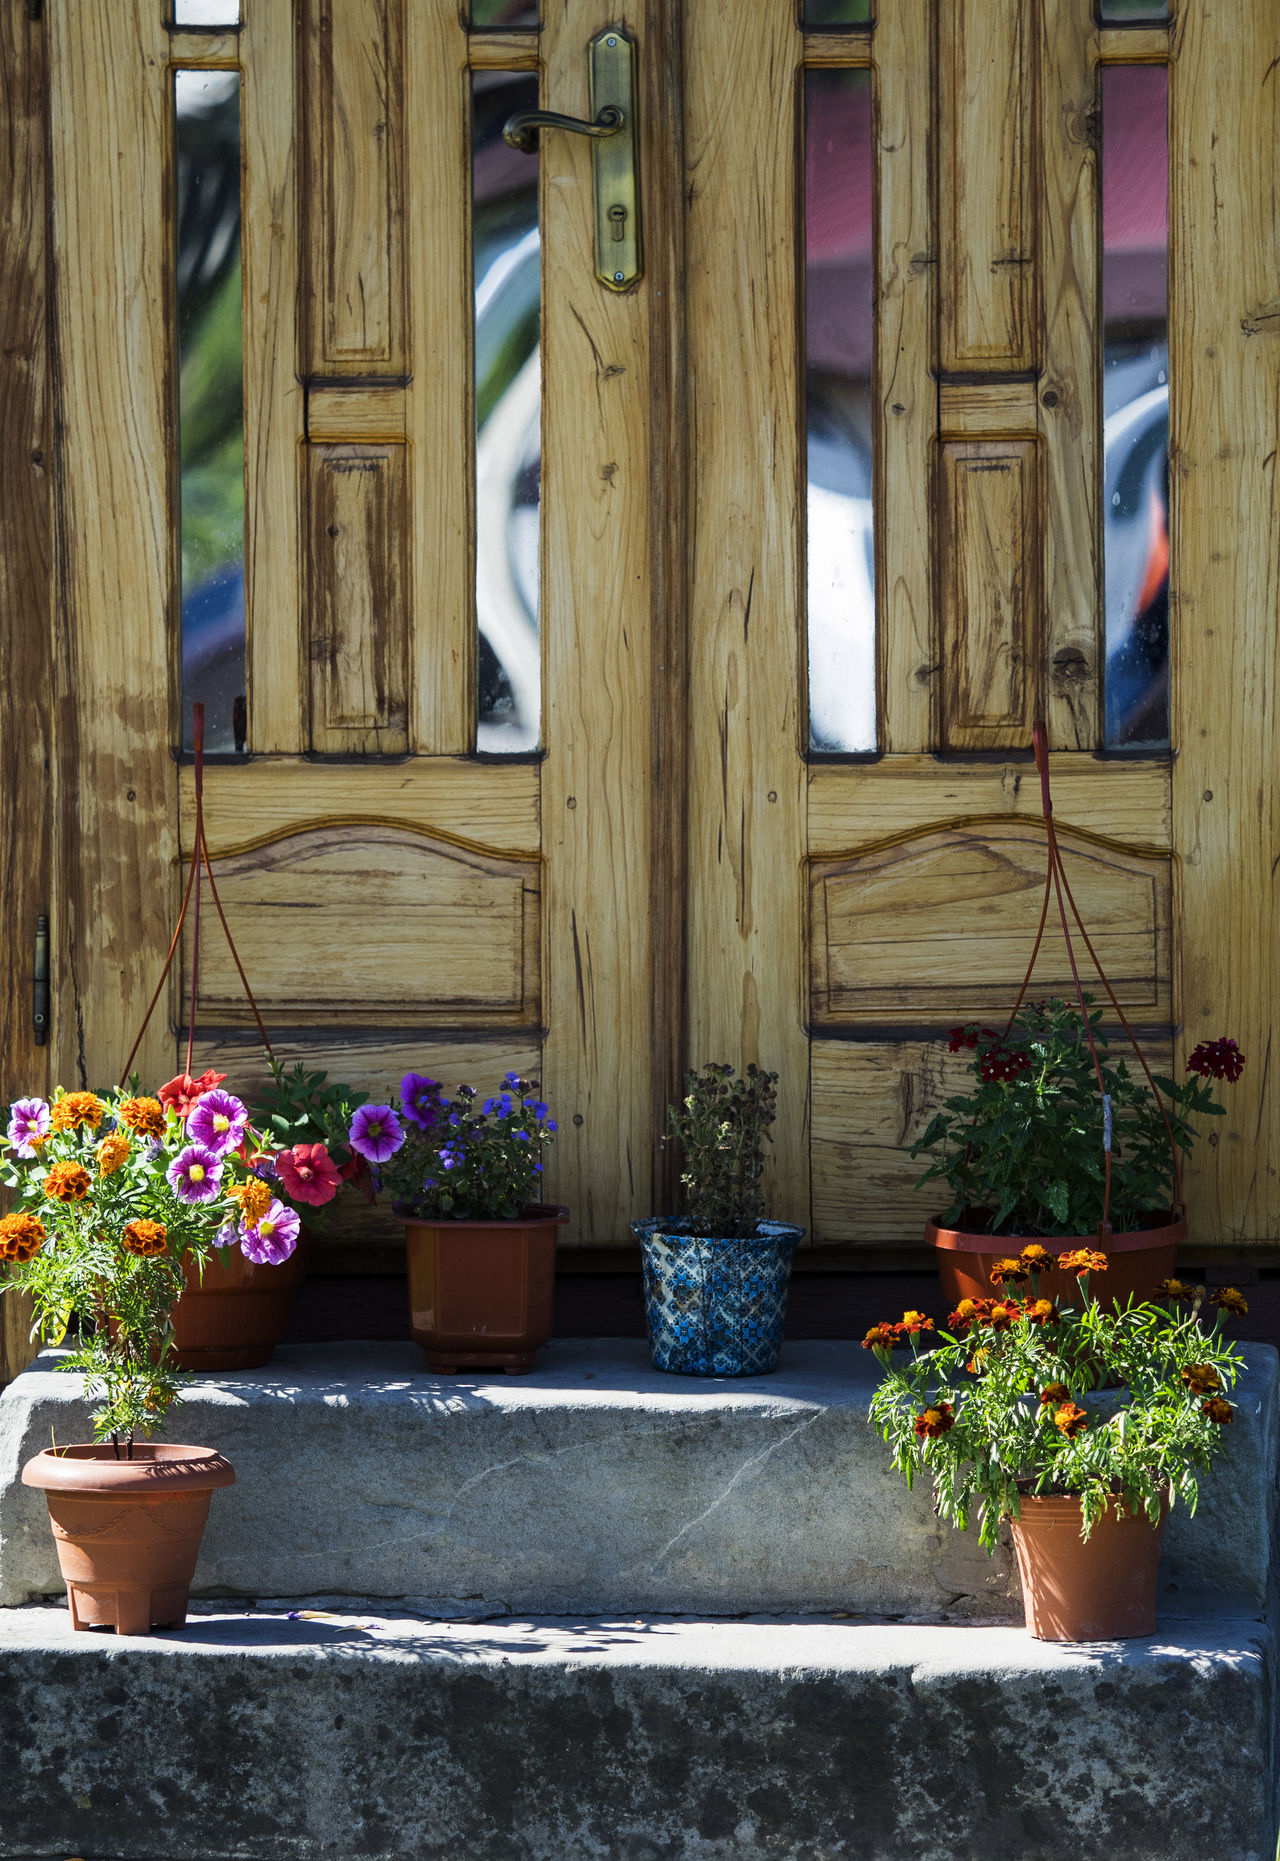 Pots of blooming flowers on the doorstep Architecture Blooming Blossom Bouquet Building Exterior Built Structure Day Decoration Doorstep Flower Flower Pot Flower Shop Flowers Fragility Freshness Growth Houseplant In Bloom In Front Of Multi Colored Outdoors Plant Potted Plant Vacations Wildflower